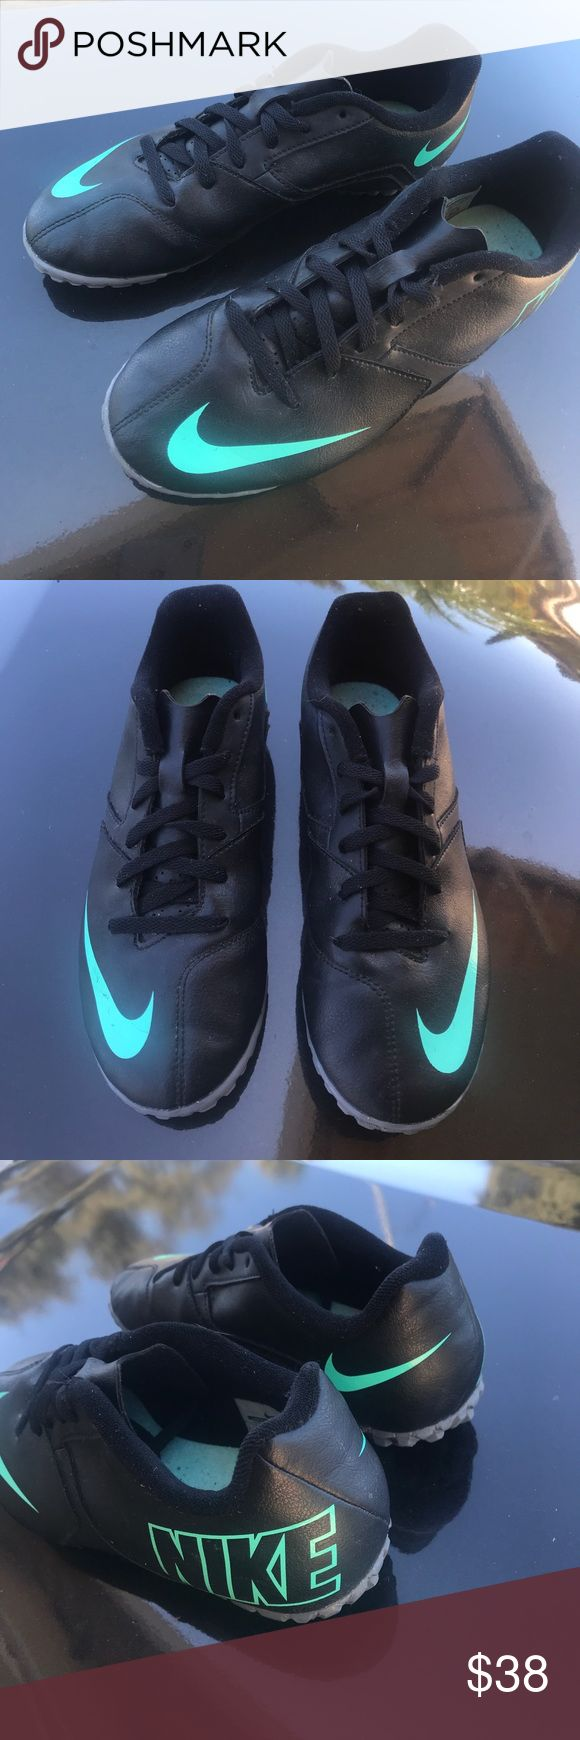 Nike Soccer Turf Shoes Like new Nike soccer turf shoes. Black leather with teal Nike detailing. Very comfortable and still in great condition! Nike Shoes Sneakers